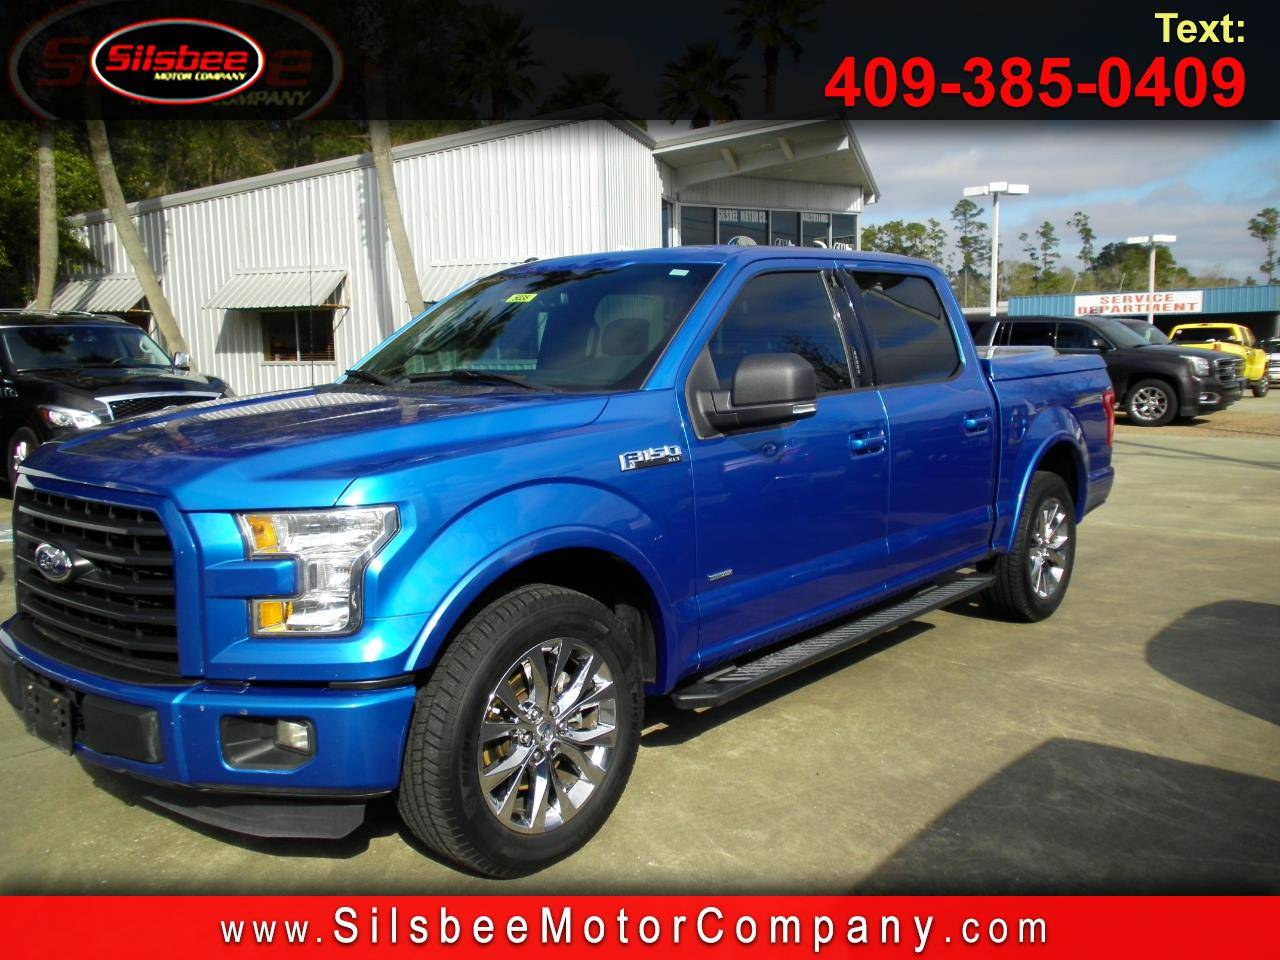 "2015 Ford F-150 2WD SuperCrew 139"" XLT Truck"